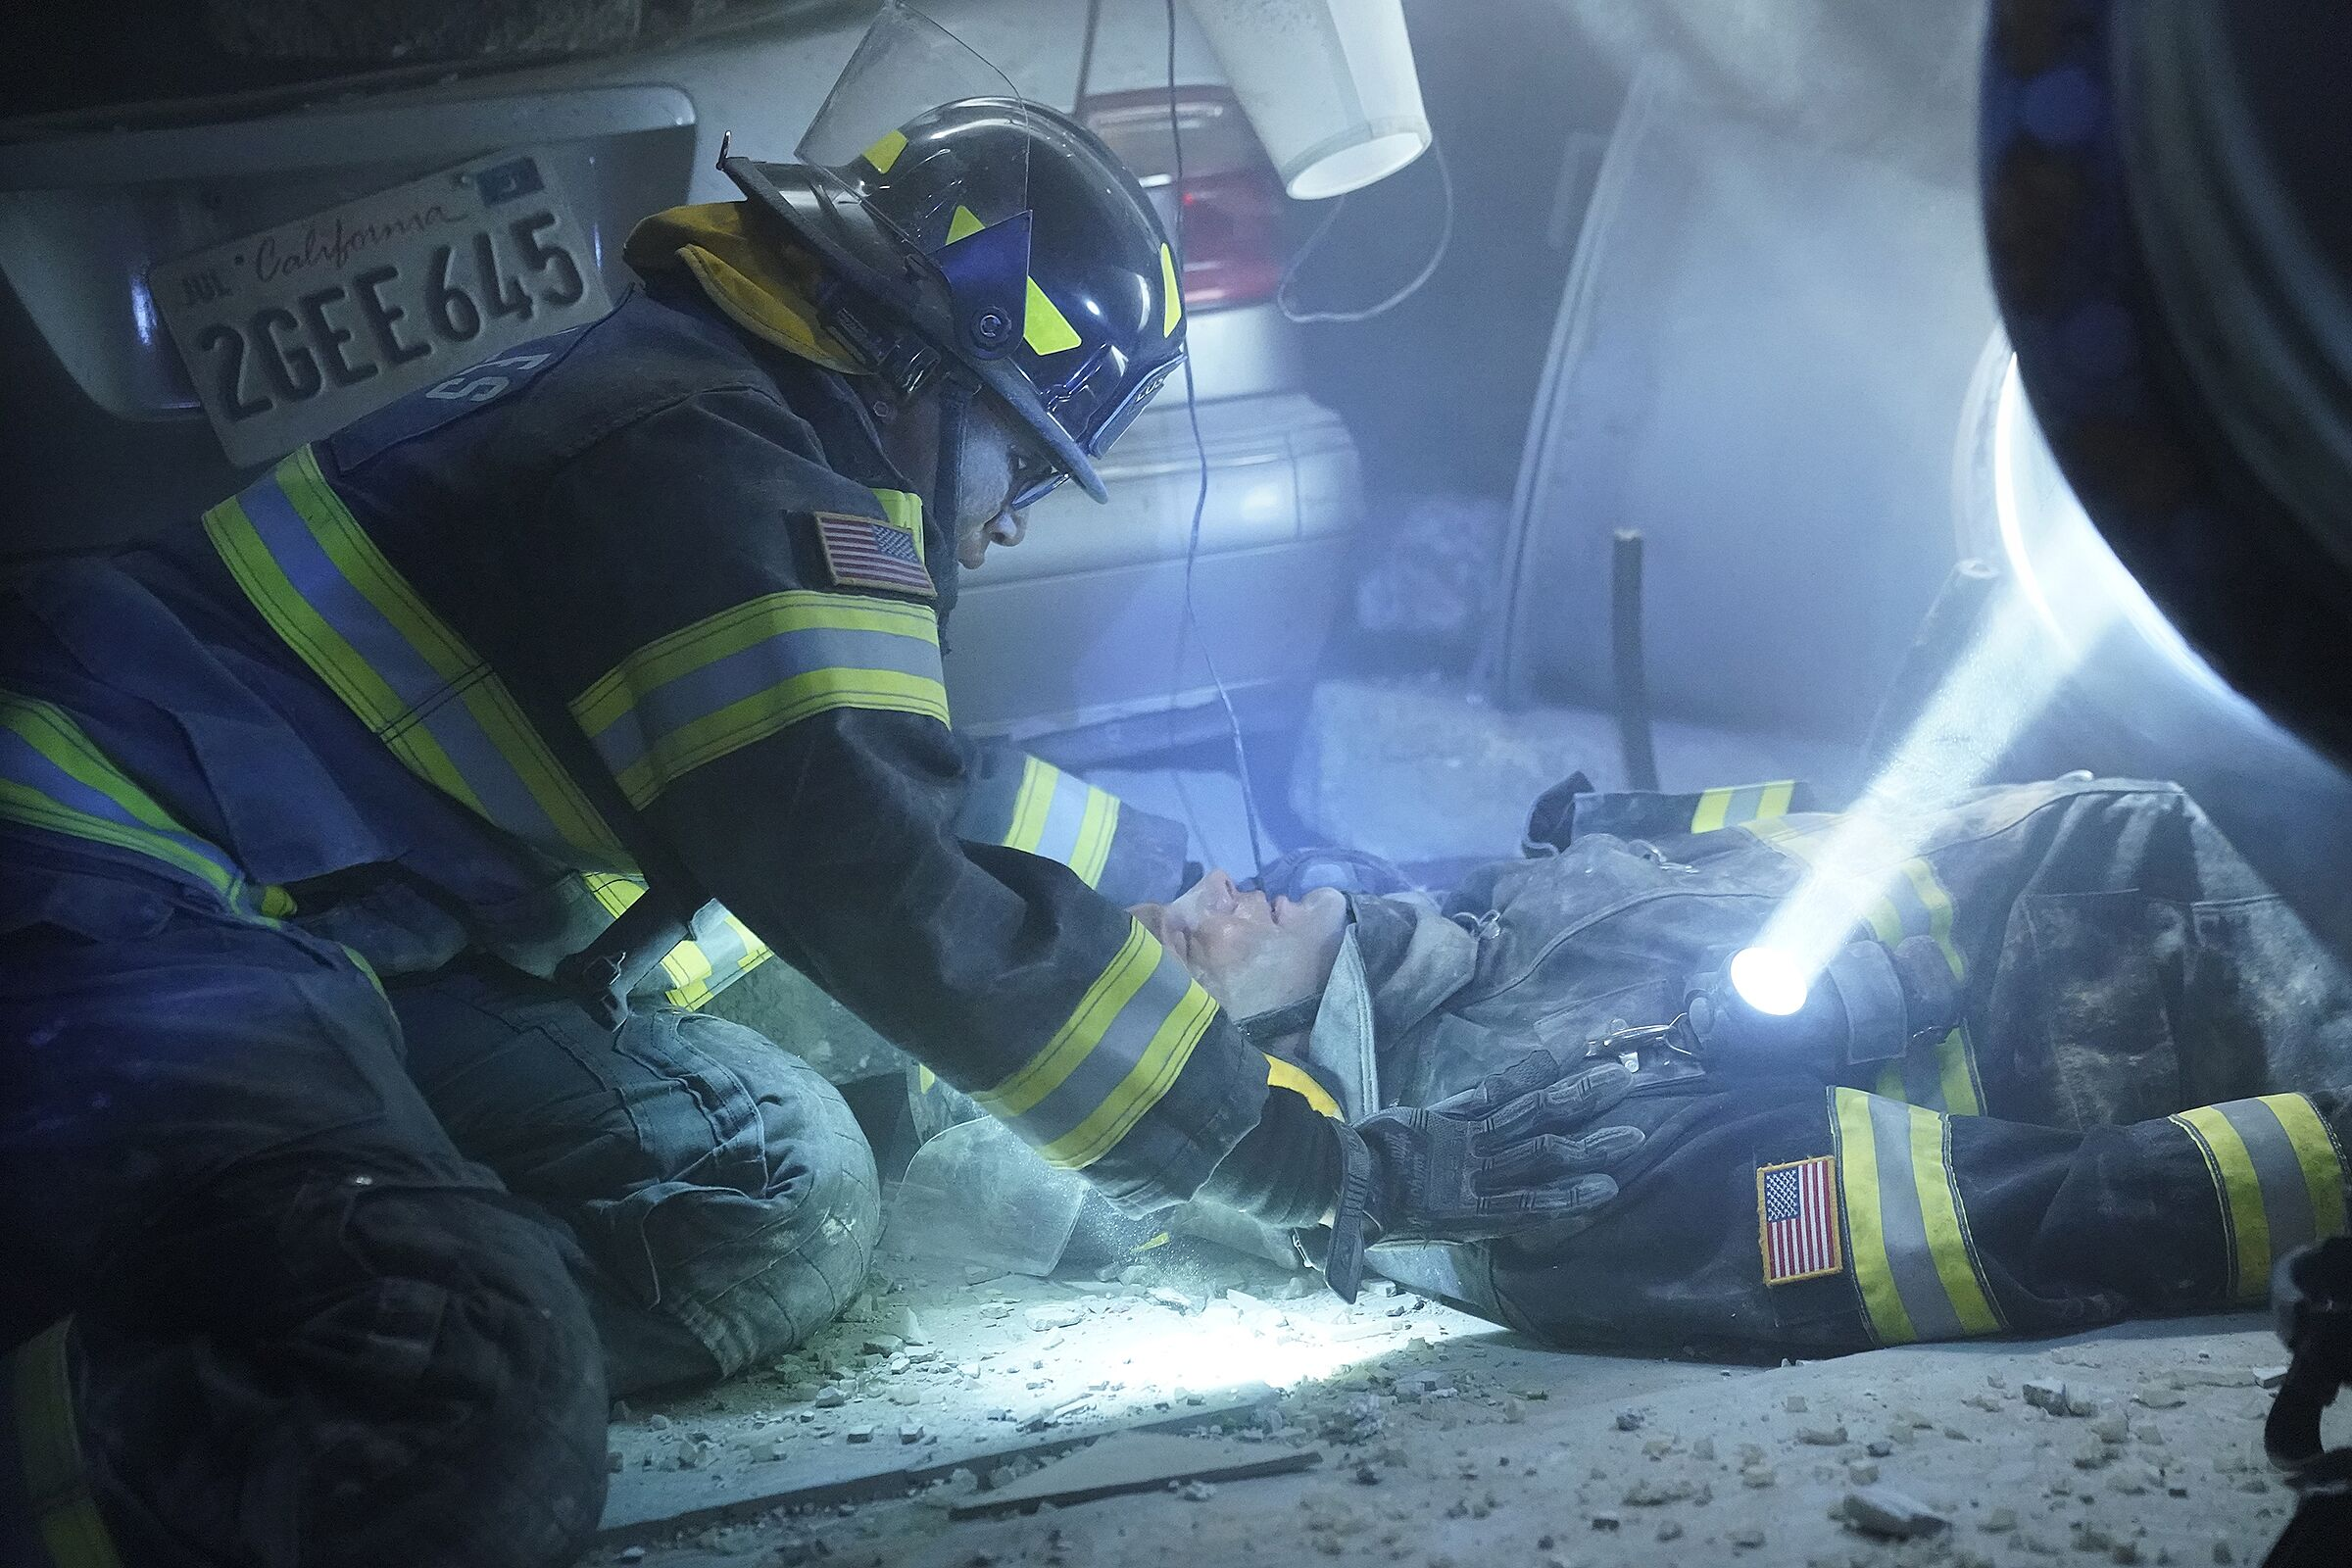 9-1-1 Season 2, Episode 3 preview: Can Hen be saved?